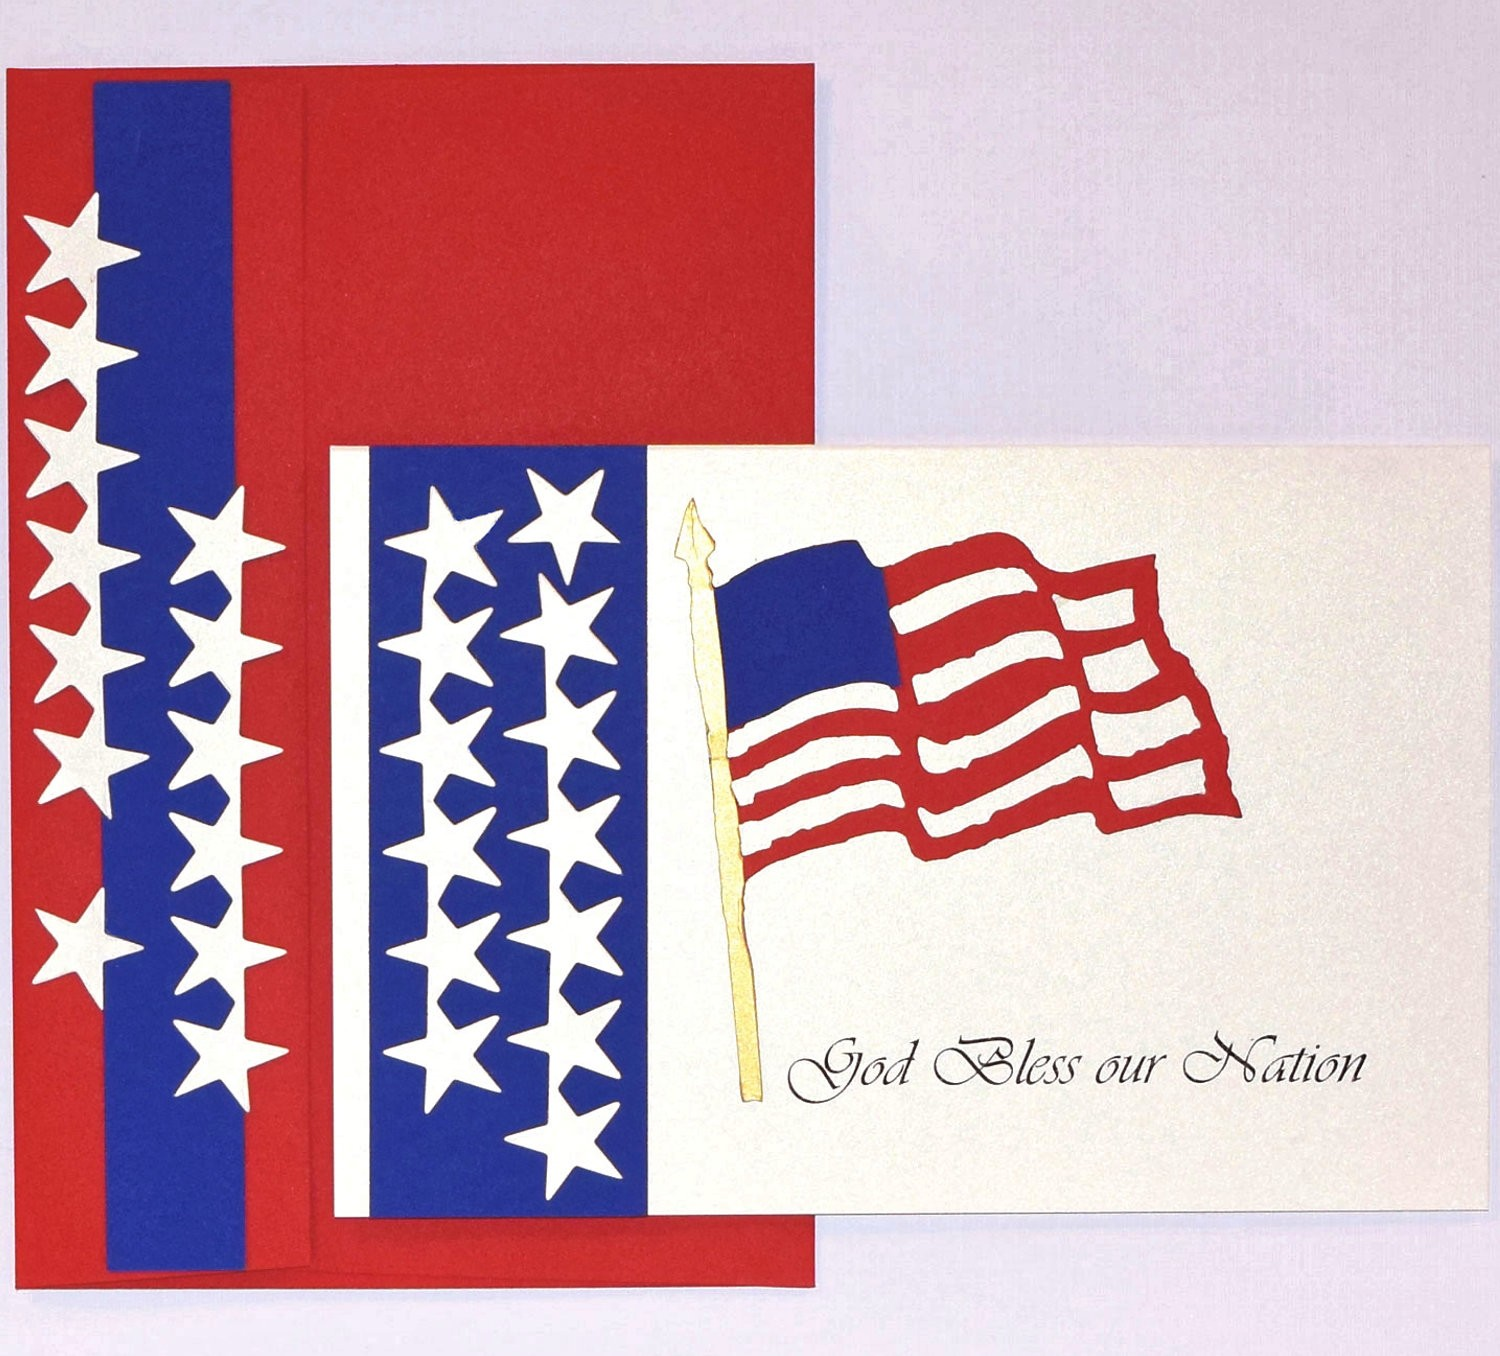 stars and stripes card is here just in time! - Paper Papers July 4th 2016 Orig proof best web - Stars and Stripes Card is here just in time!